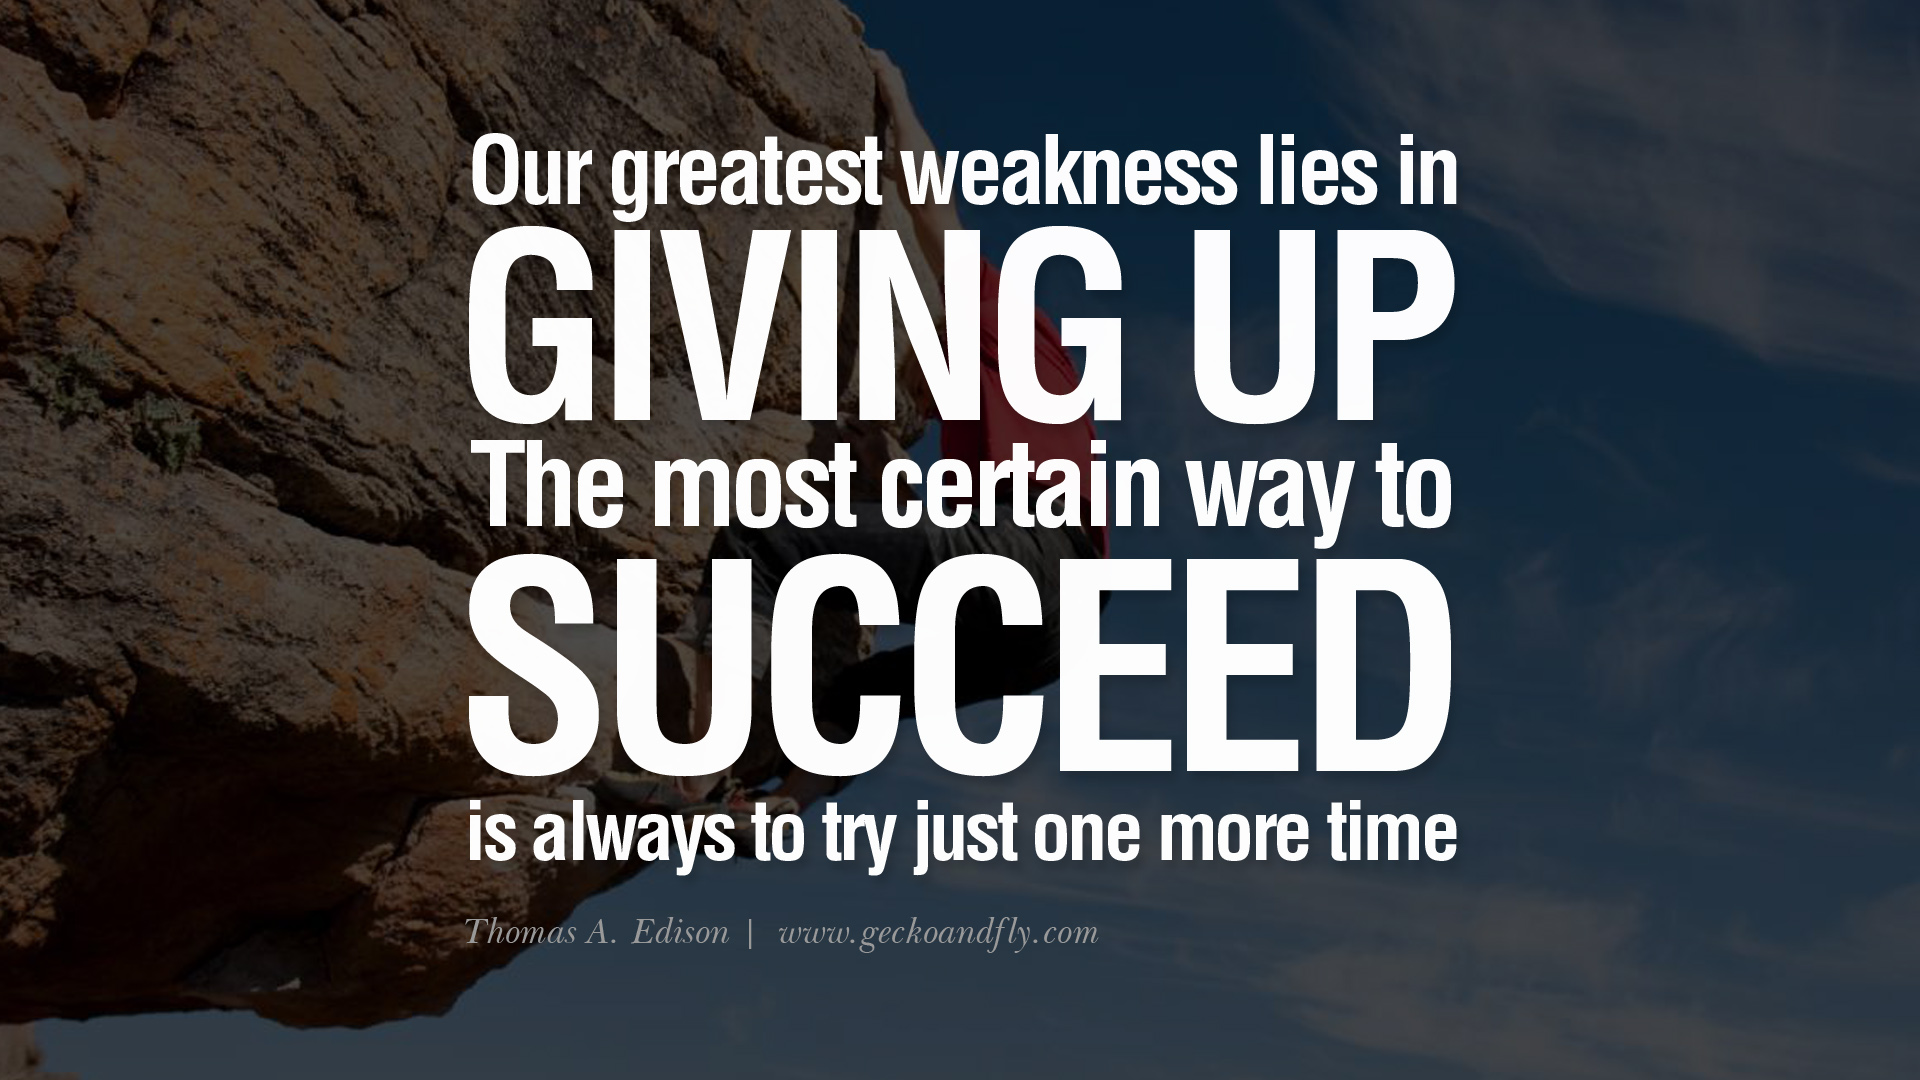 Very Inspiring Quotes About Life Inspiring Quotes And Images About Life Struggle Strength